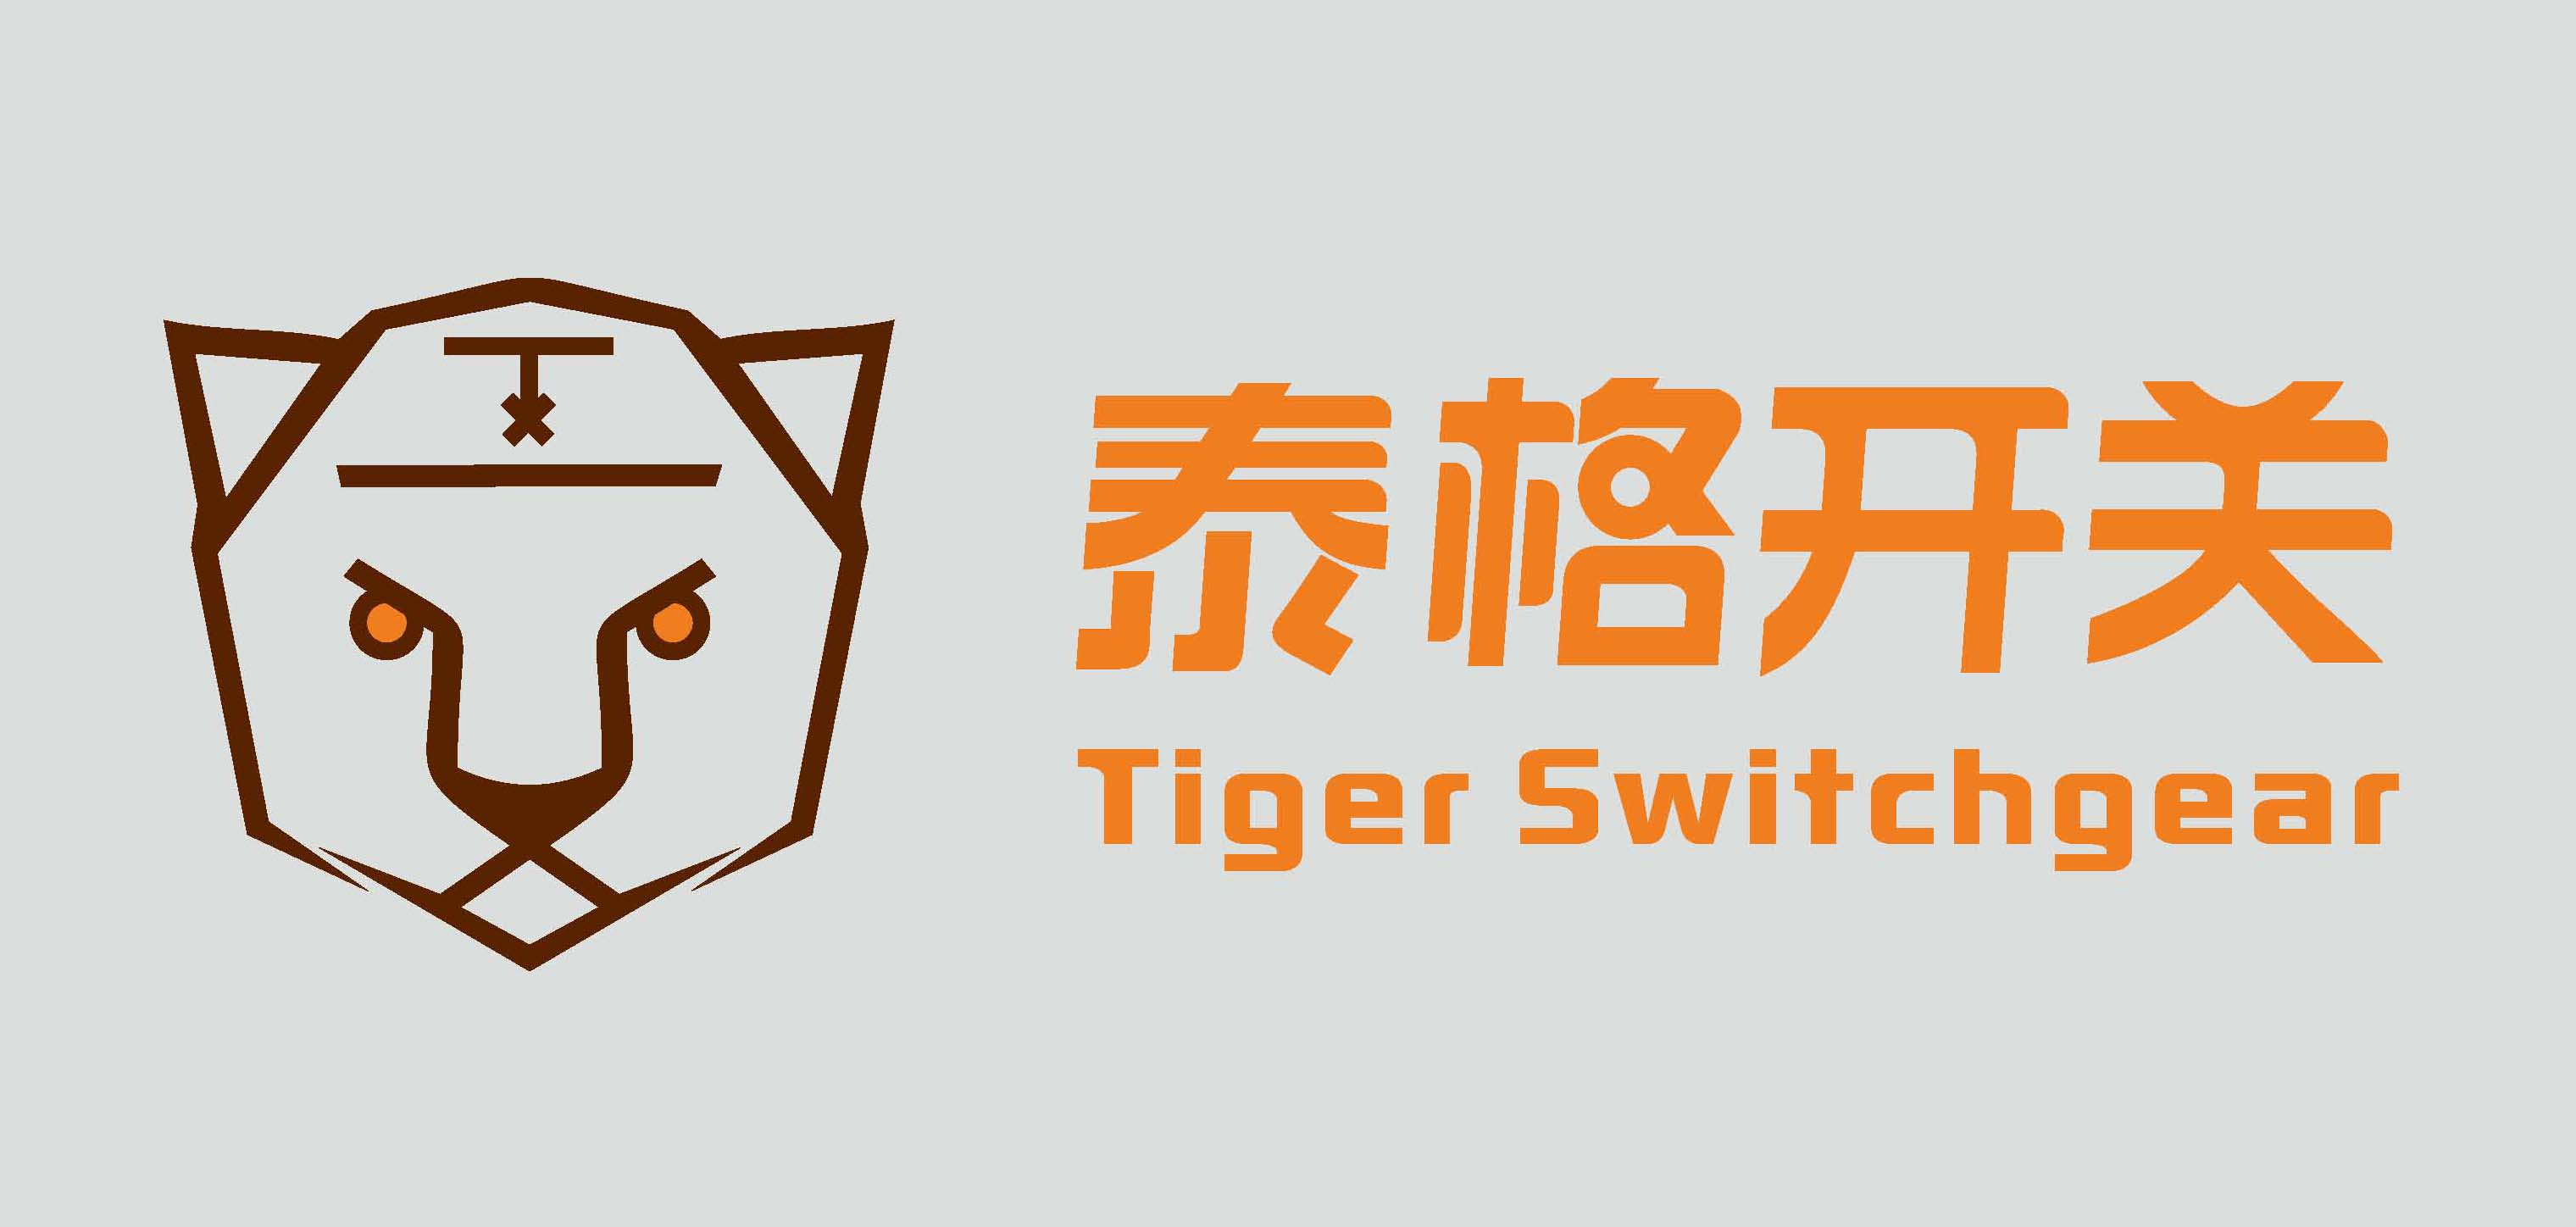 Tiger Switchgear